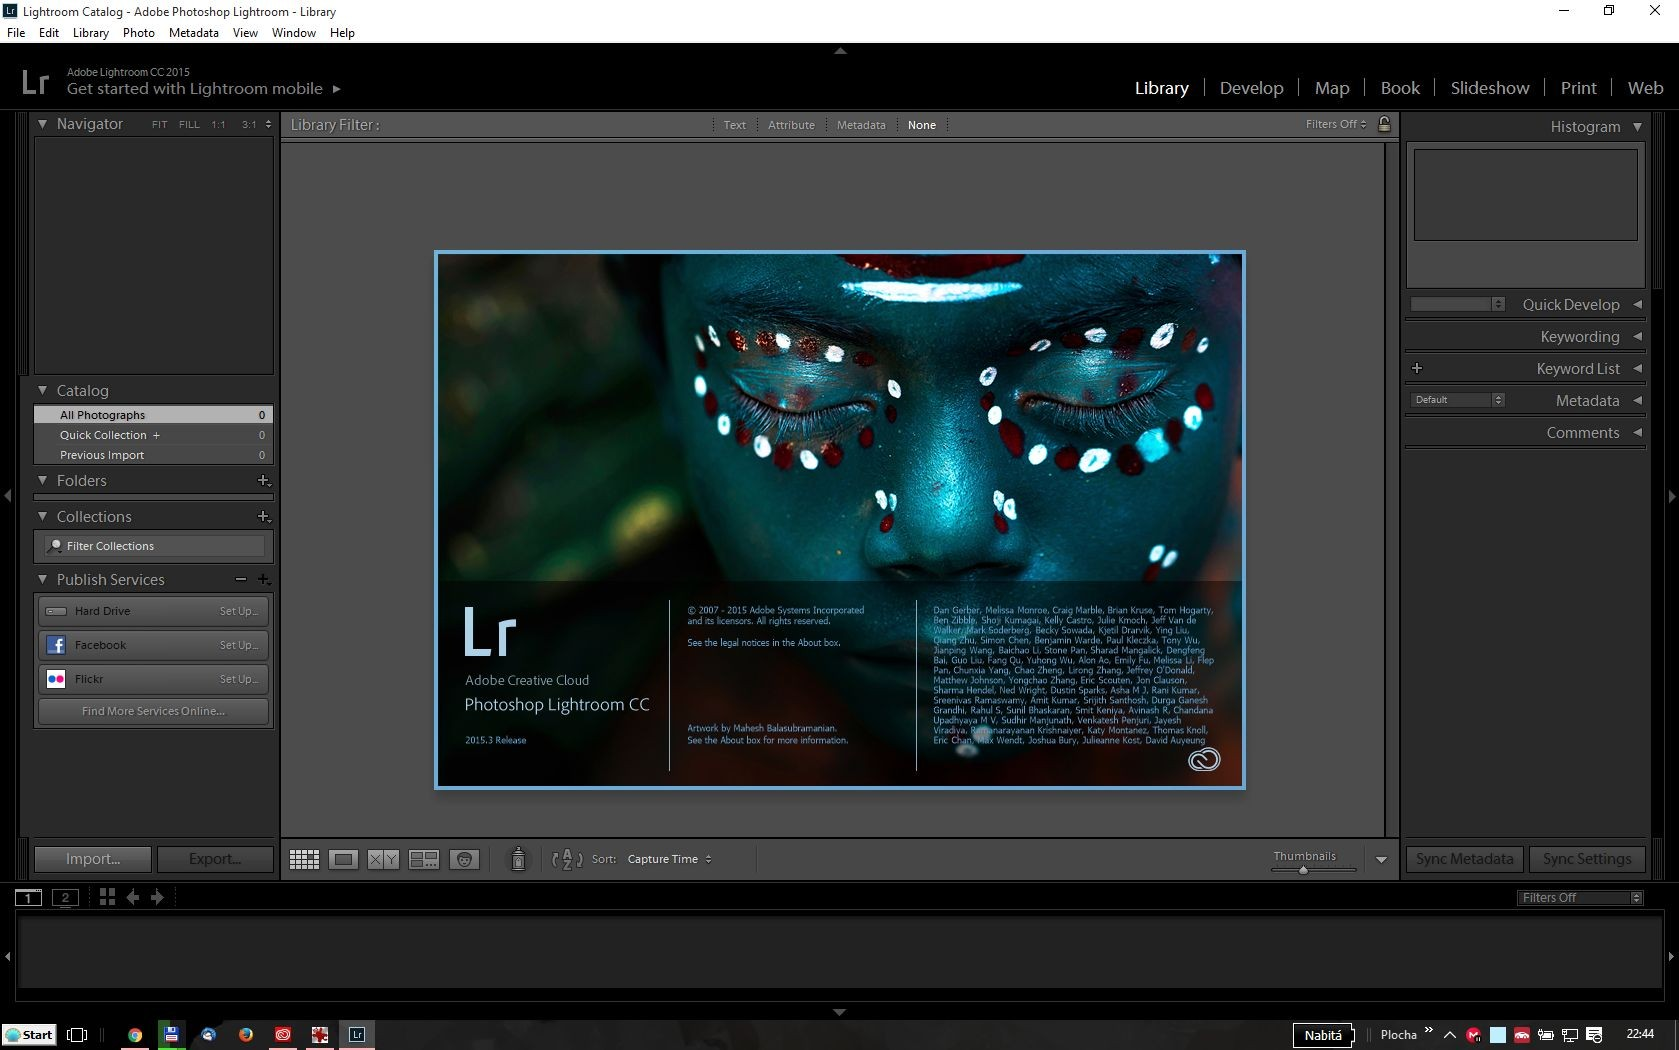 Adobe Photoshop Lightroom 6.0 - MP ENG COM - 1 licence